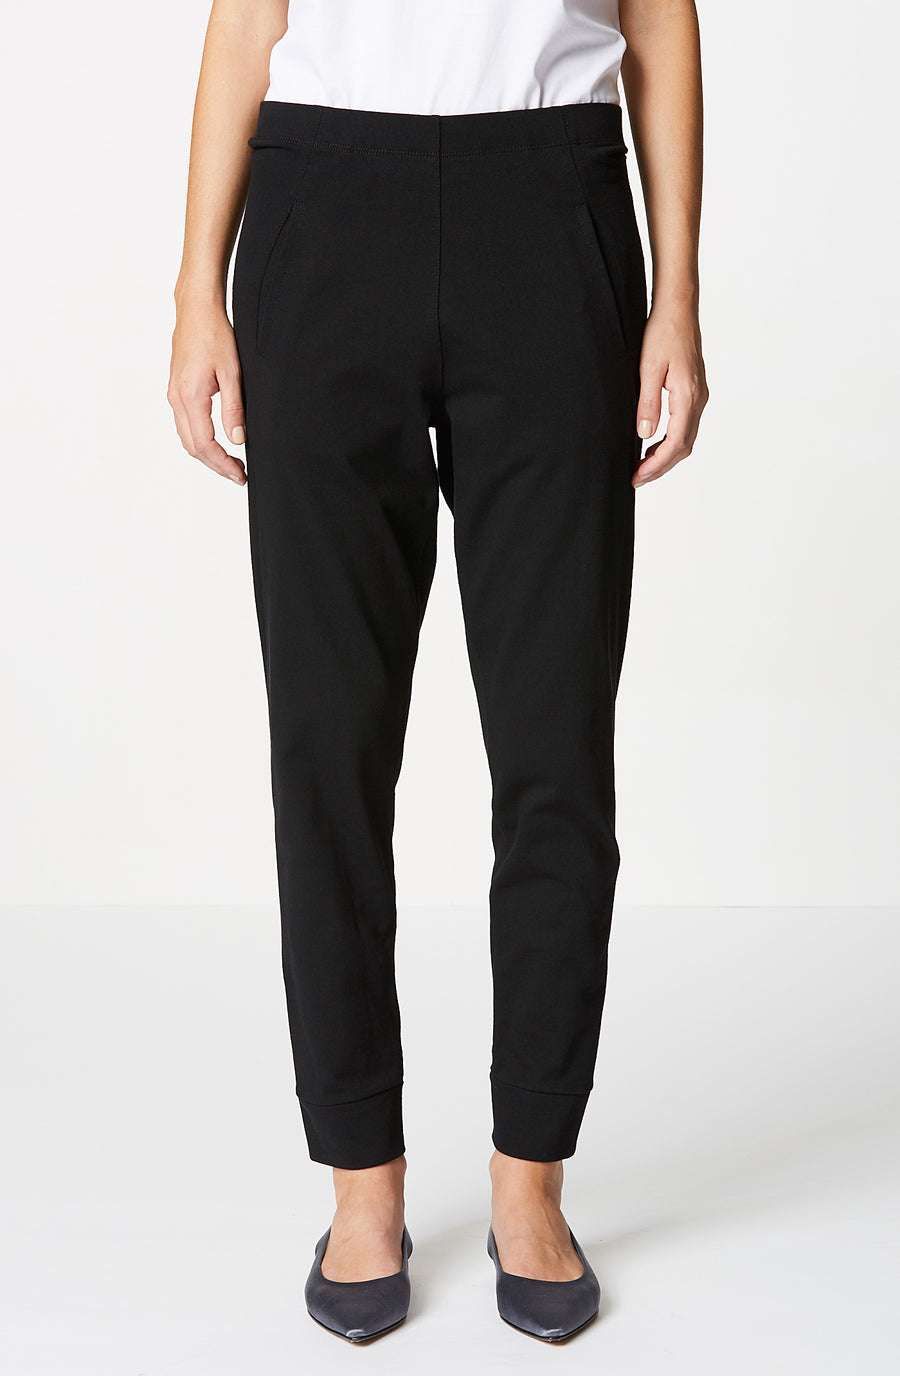 Low Rise Sweat Pant, slim dropped crotch, slanted front pockets, a back jet pocket and tapered leg, color black